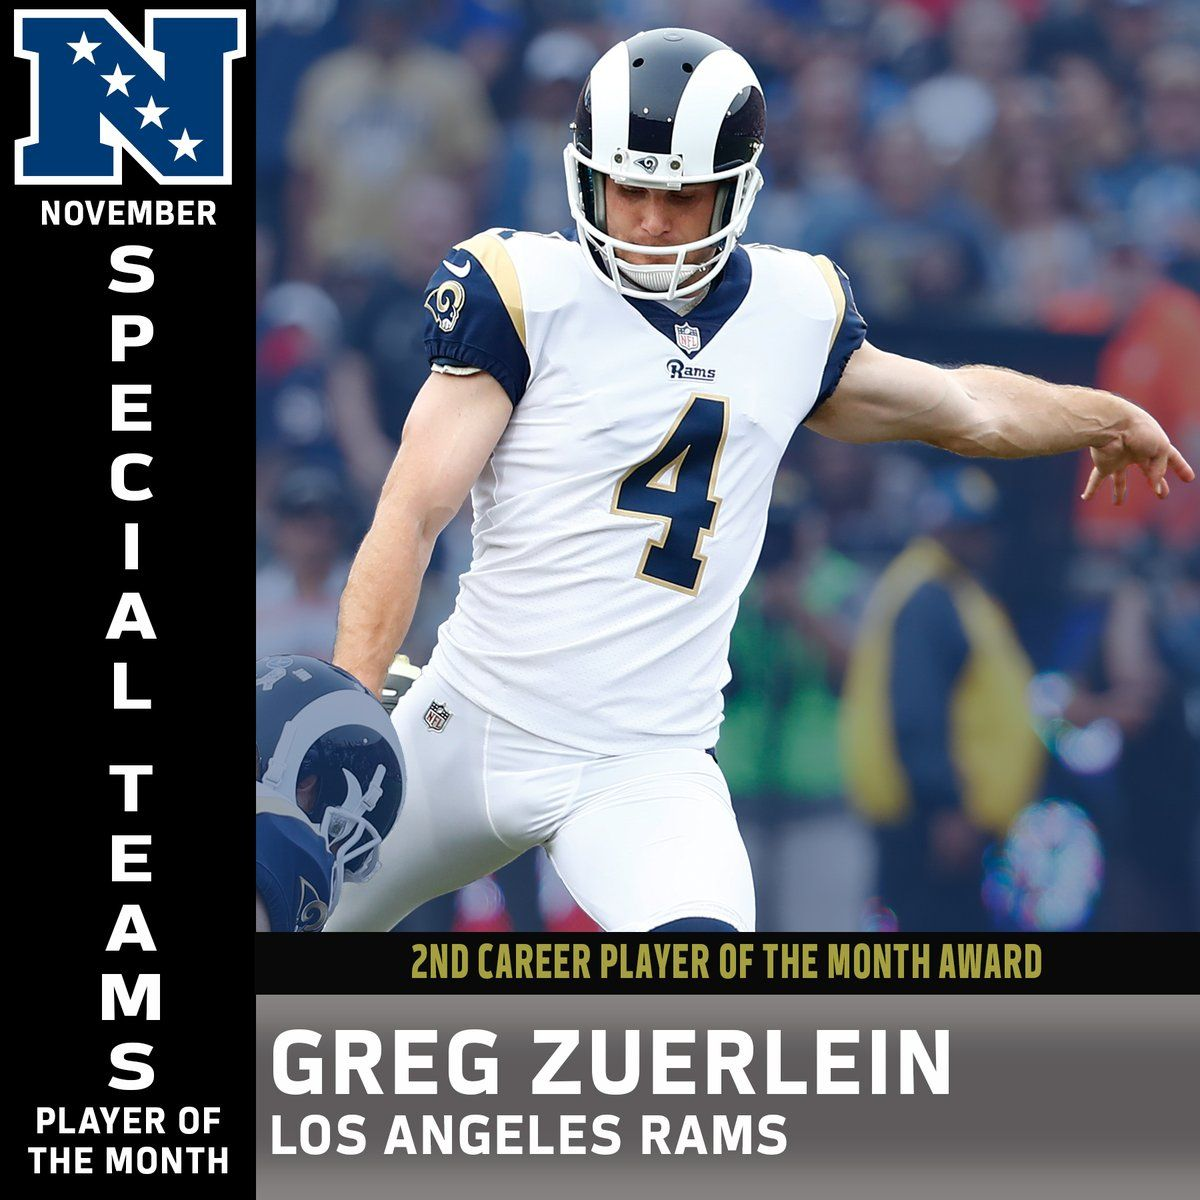 Greg Zuerlein is the 1st player in NFL history to be named